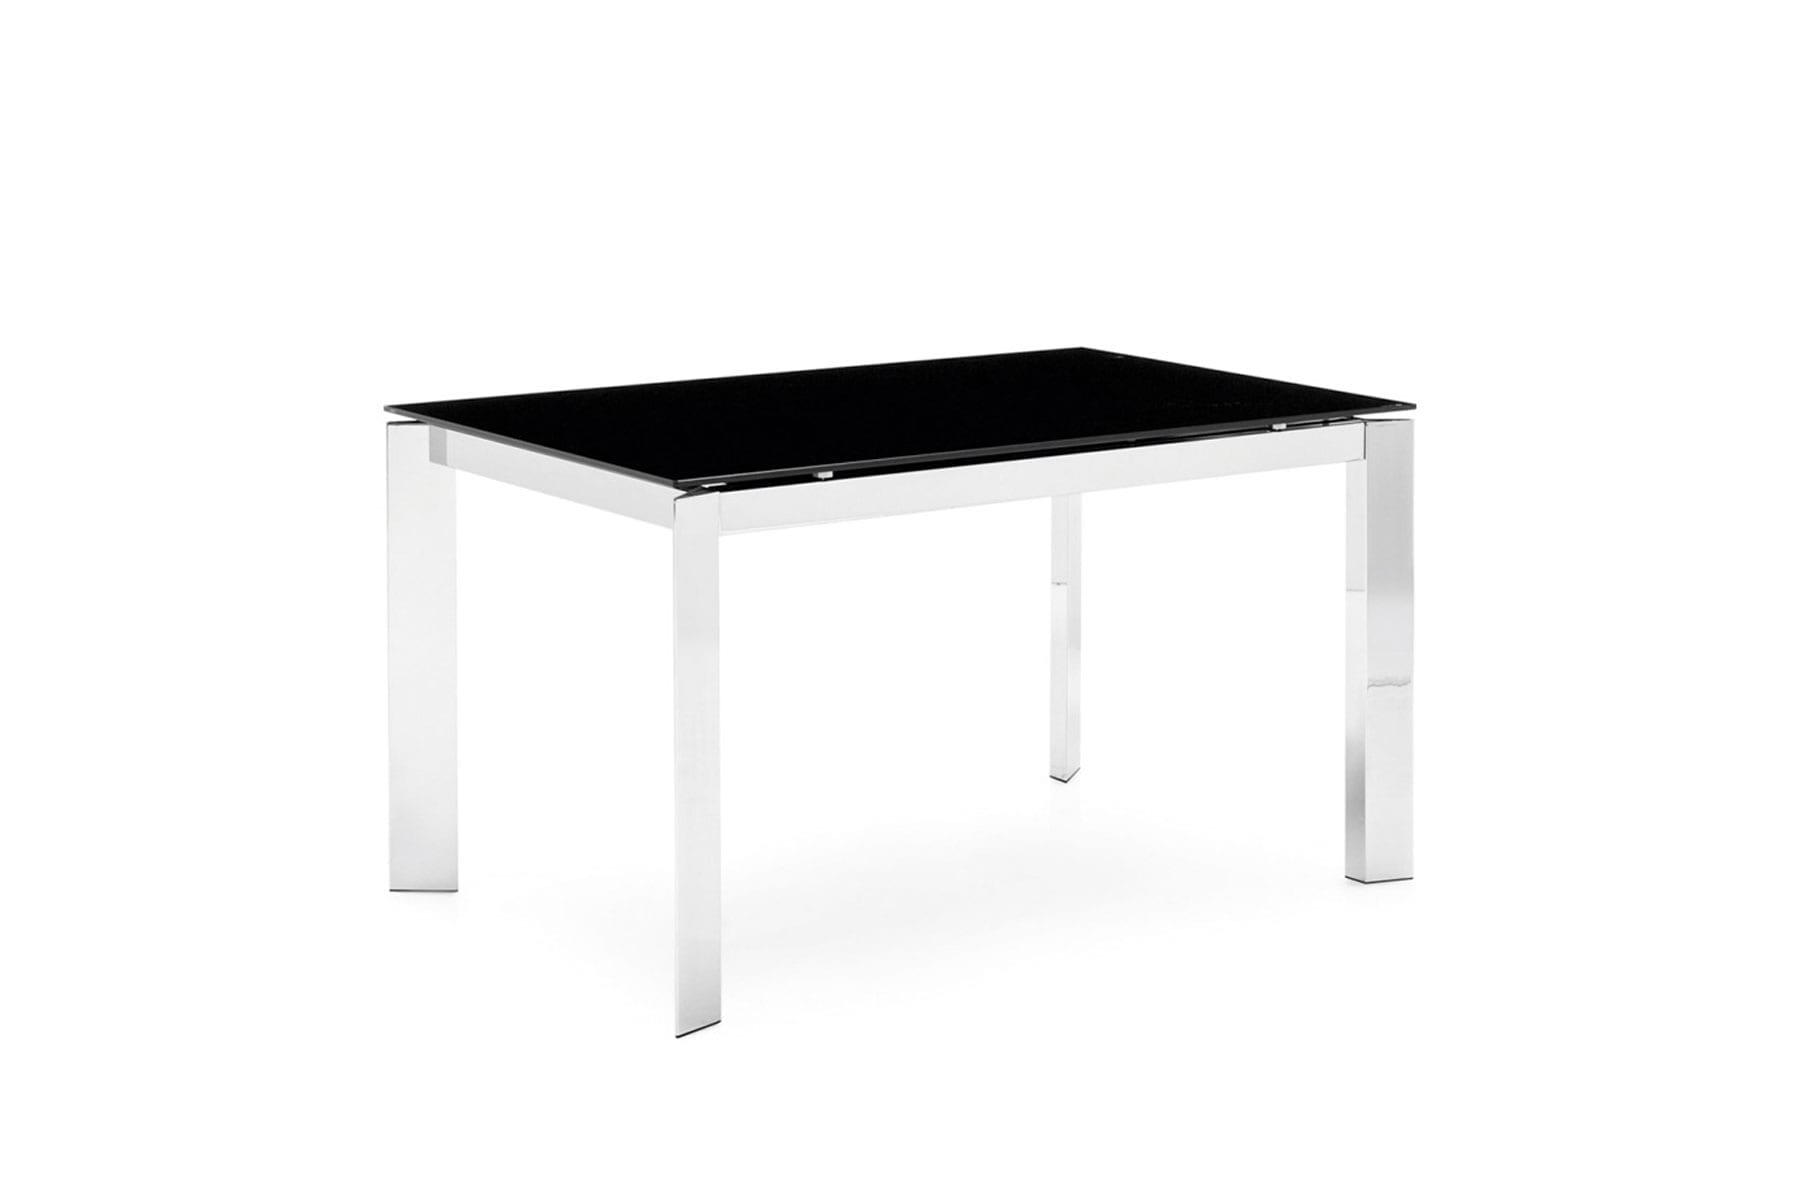 Calligaris baron dining table mckenzie willis for Calligaris baron table